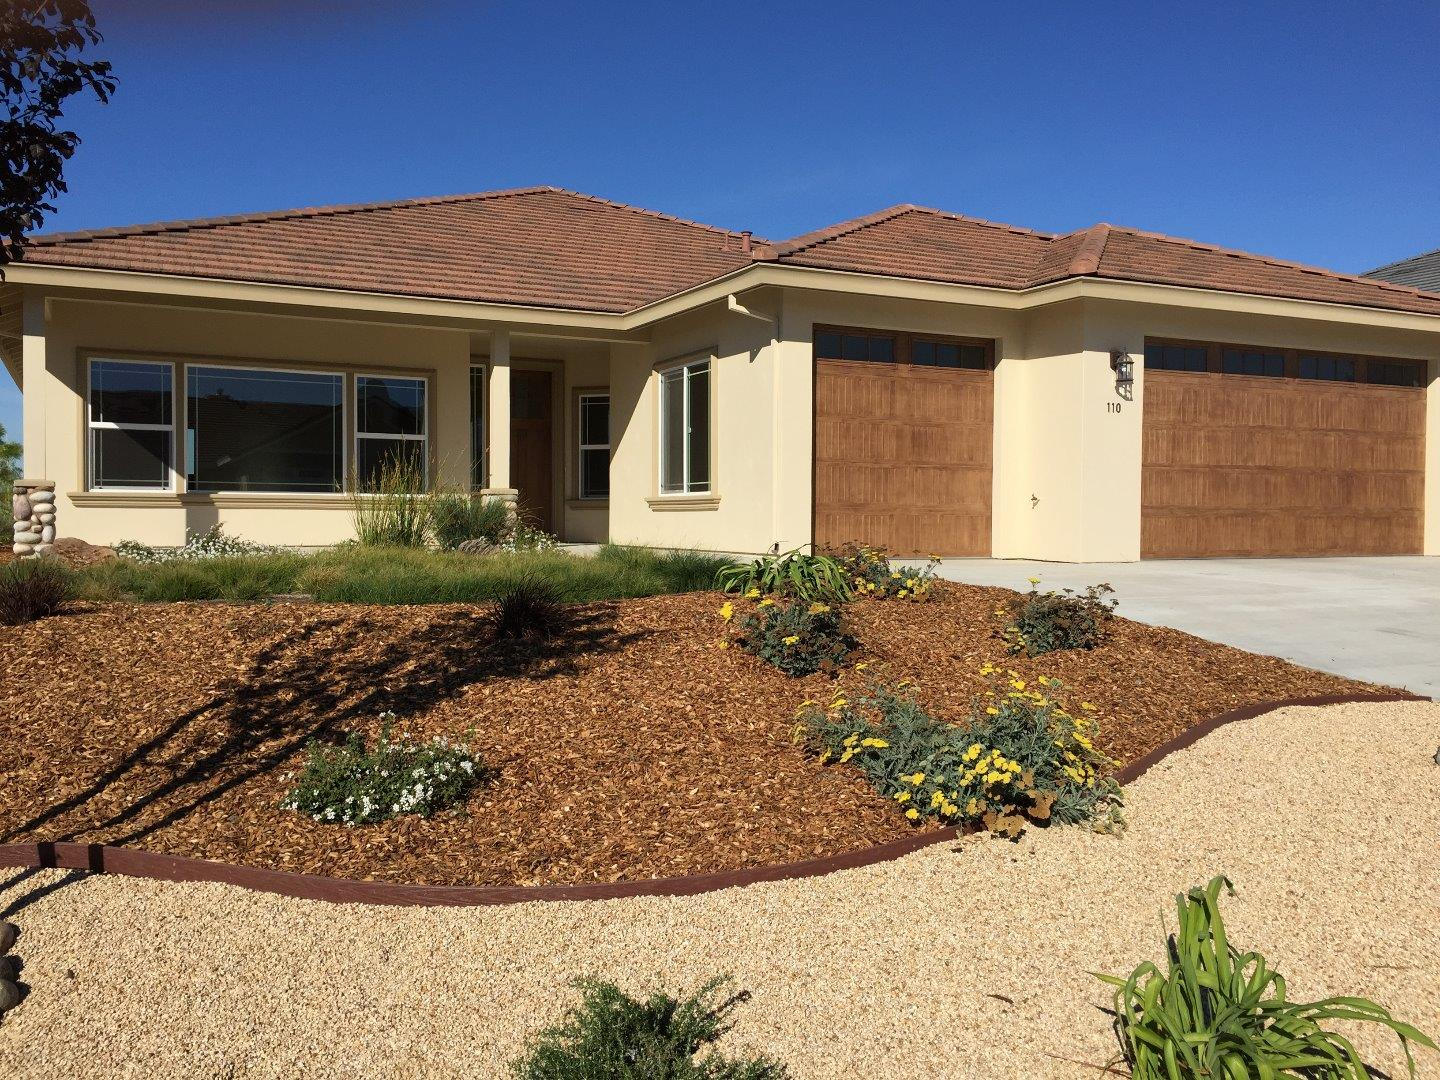 Additional photo for property listing at 110 Tyler Court  Hollister, California 95023 United States